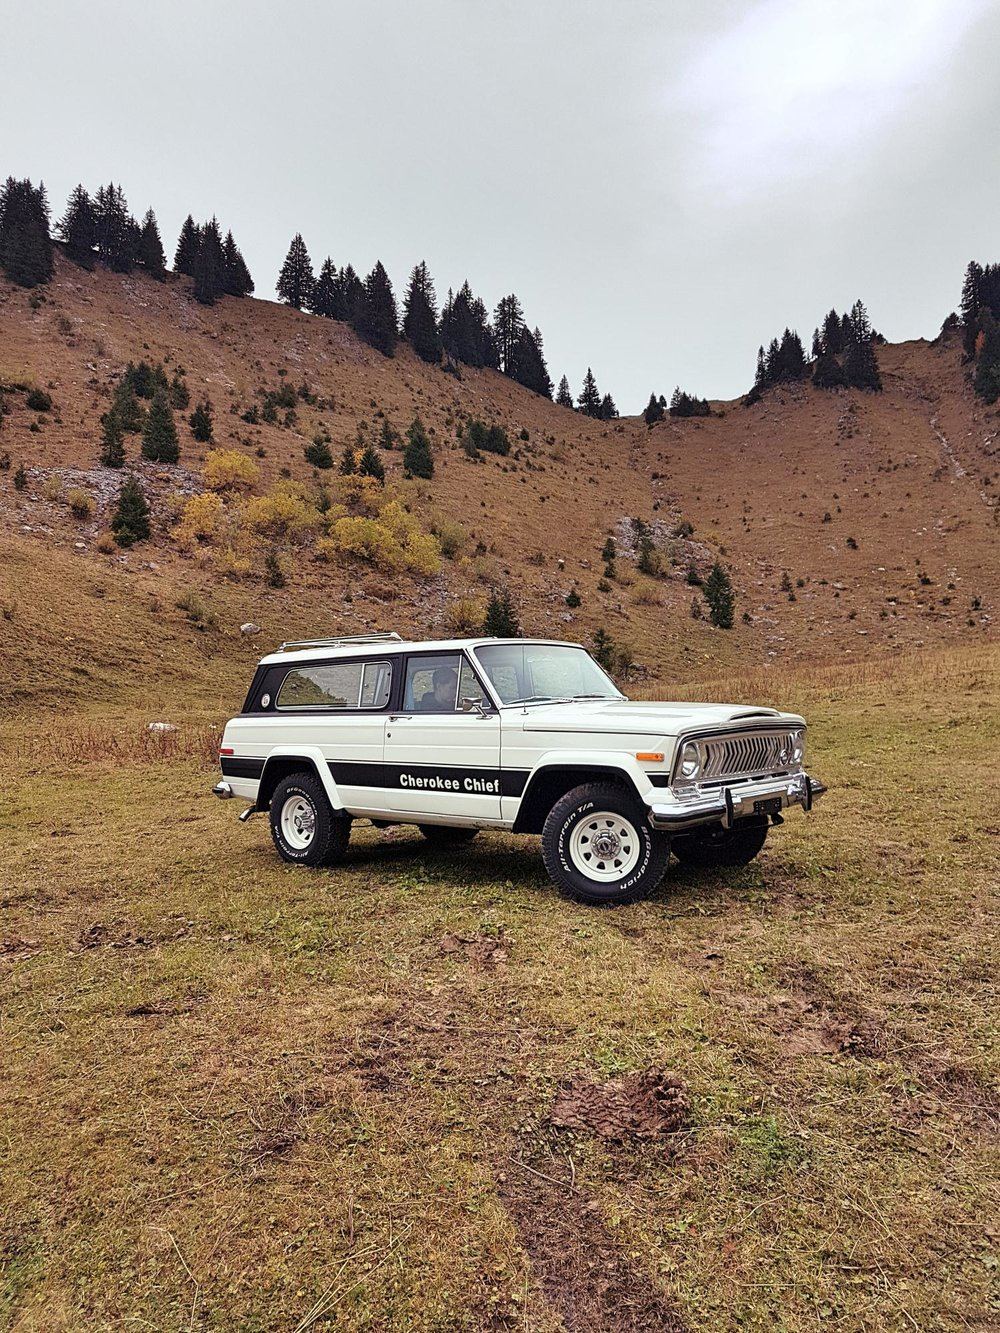 jeep-cherokee-chief-1978-shooting-morgins-switzerland-54.jpg